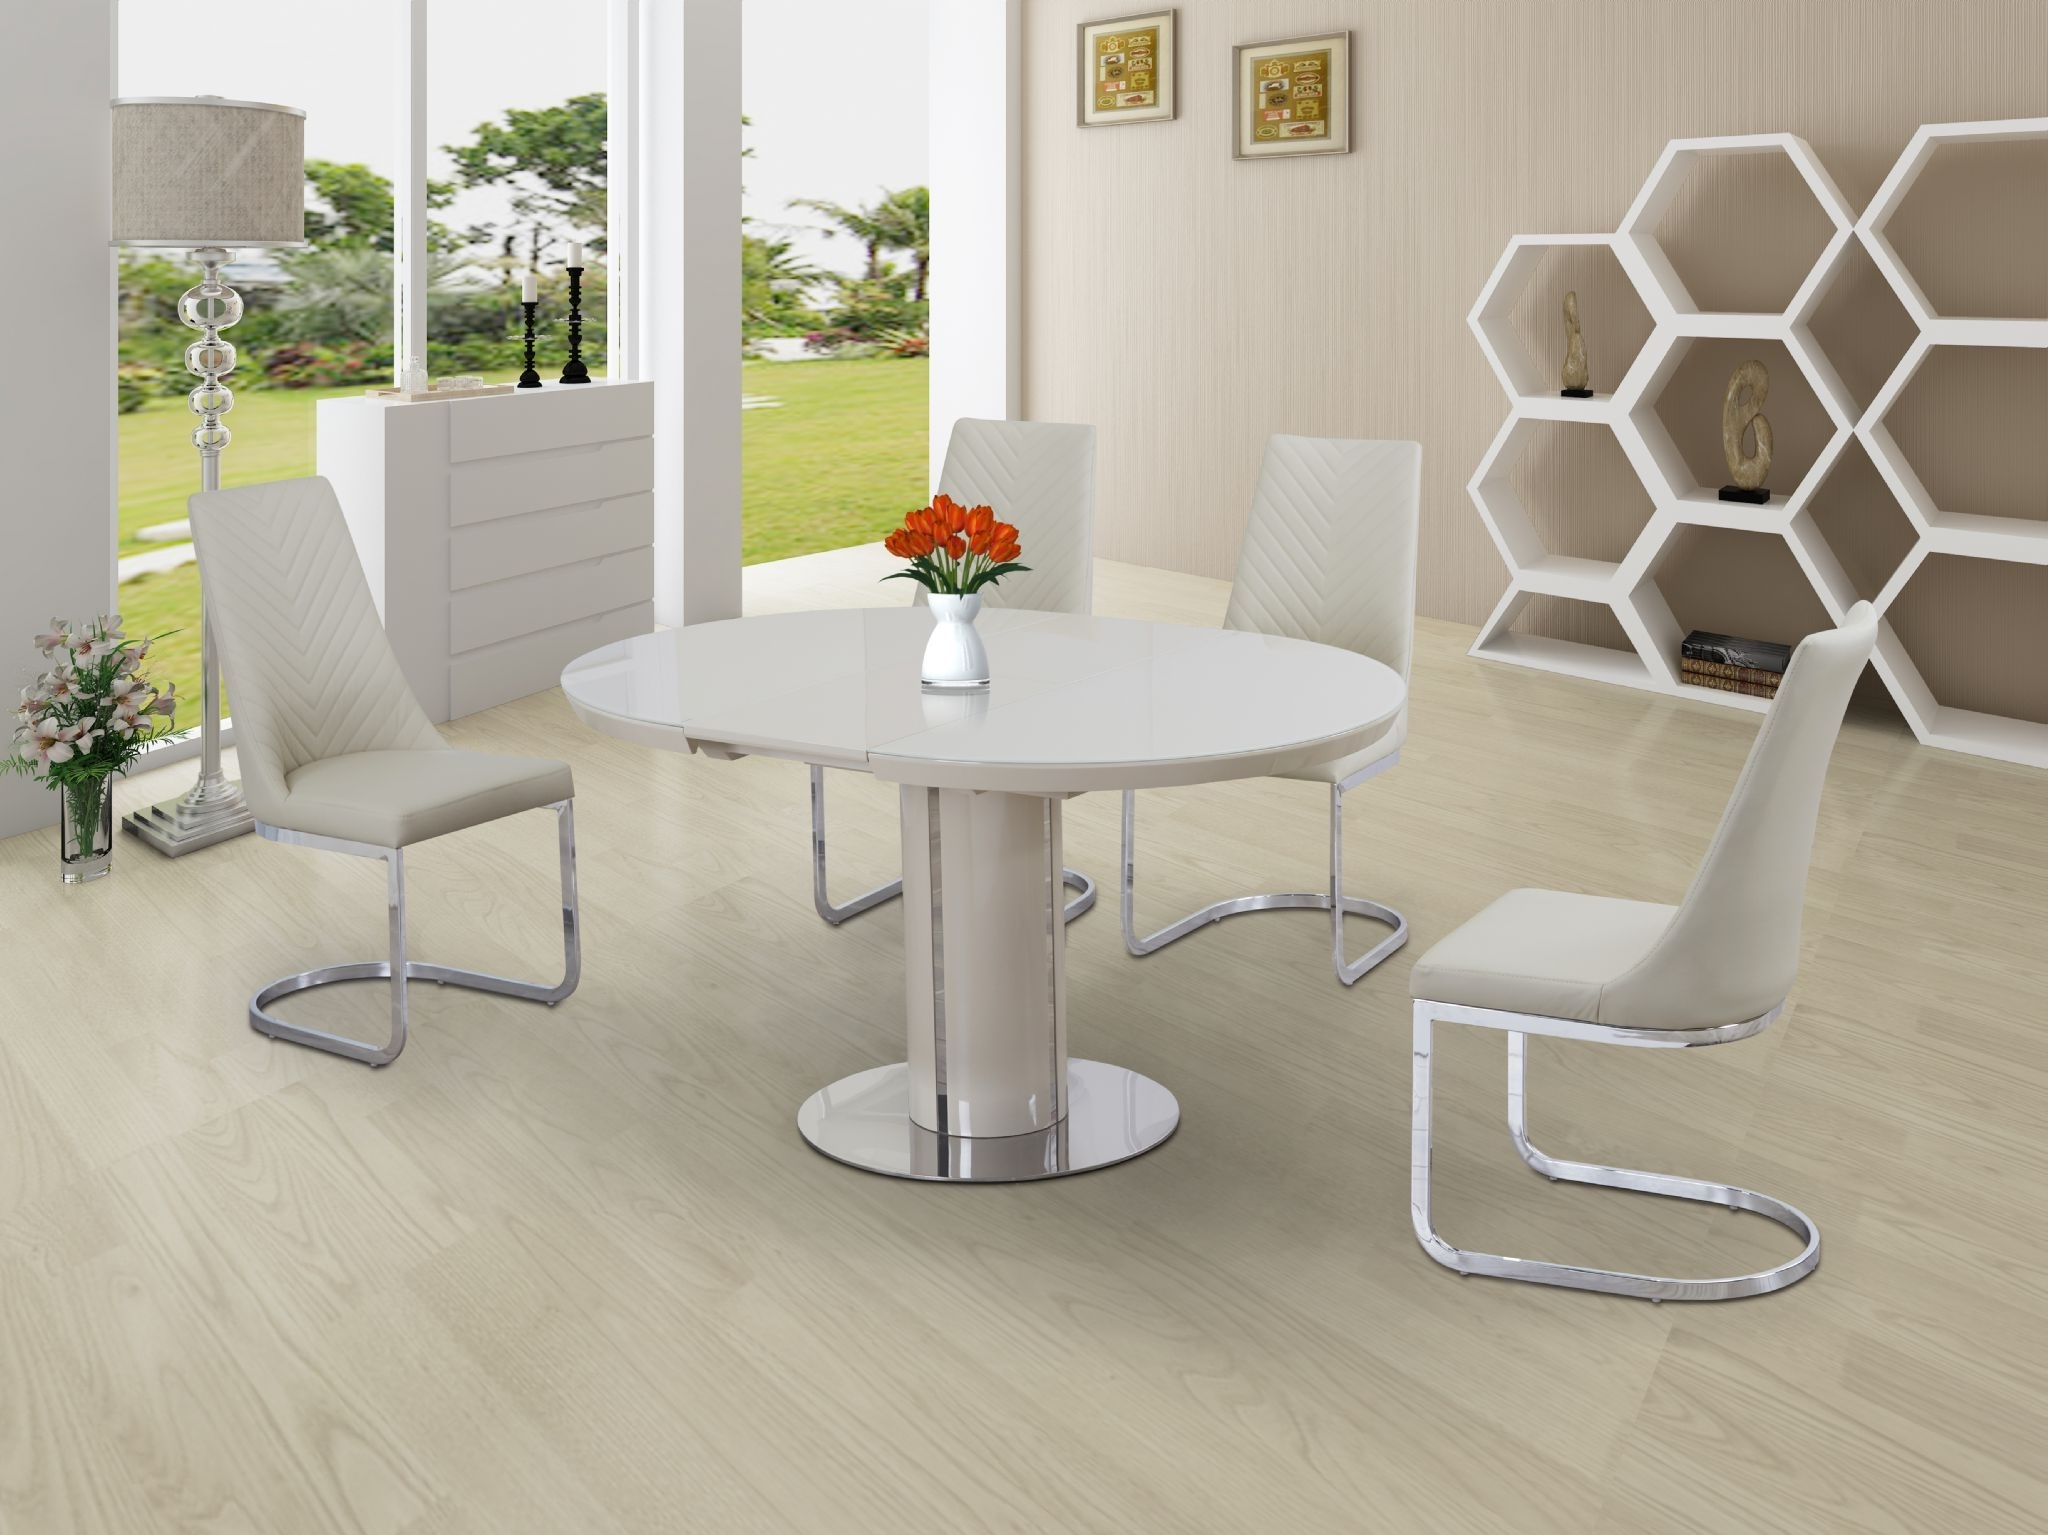 Latest White Round Extendable Dining Tables Pertaining To Buy Cream Small Round Extendable Dining Table Today (View 2 of 25)